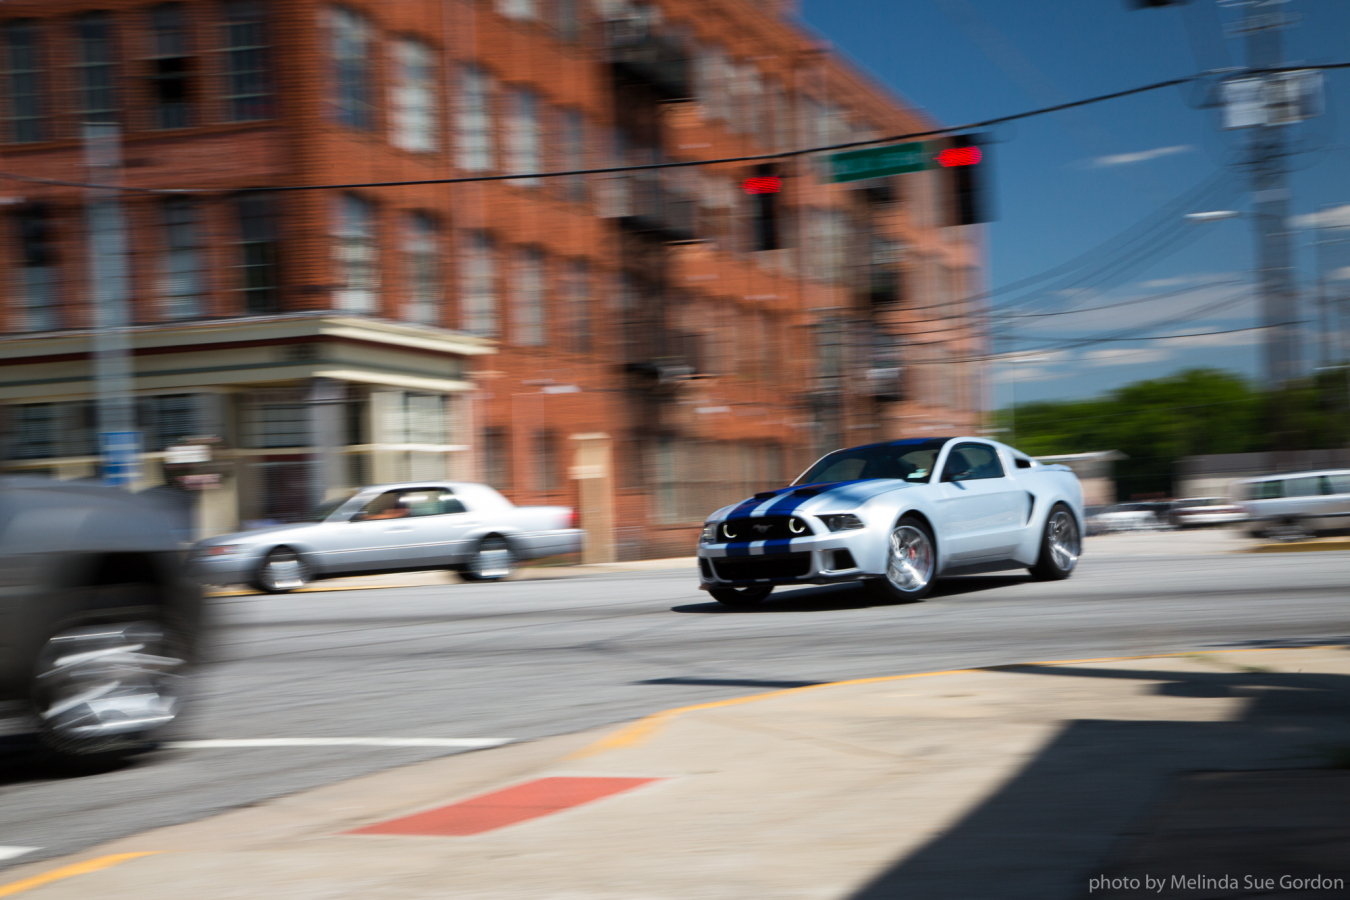 Mustang action in Scott Waugh's NEED FOR SPEED.